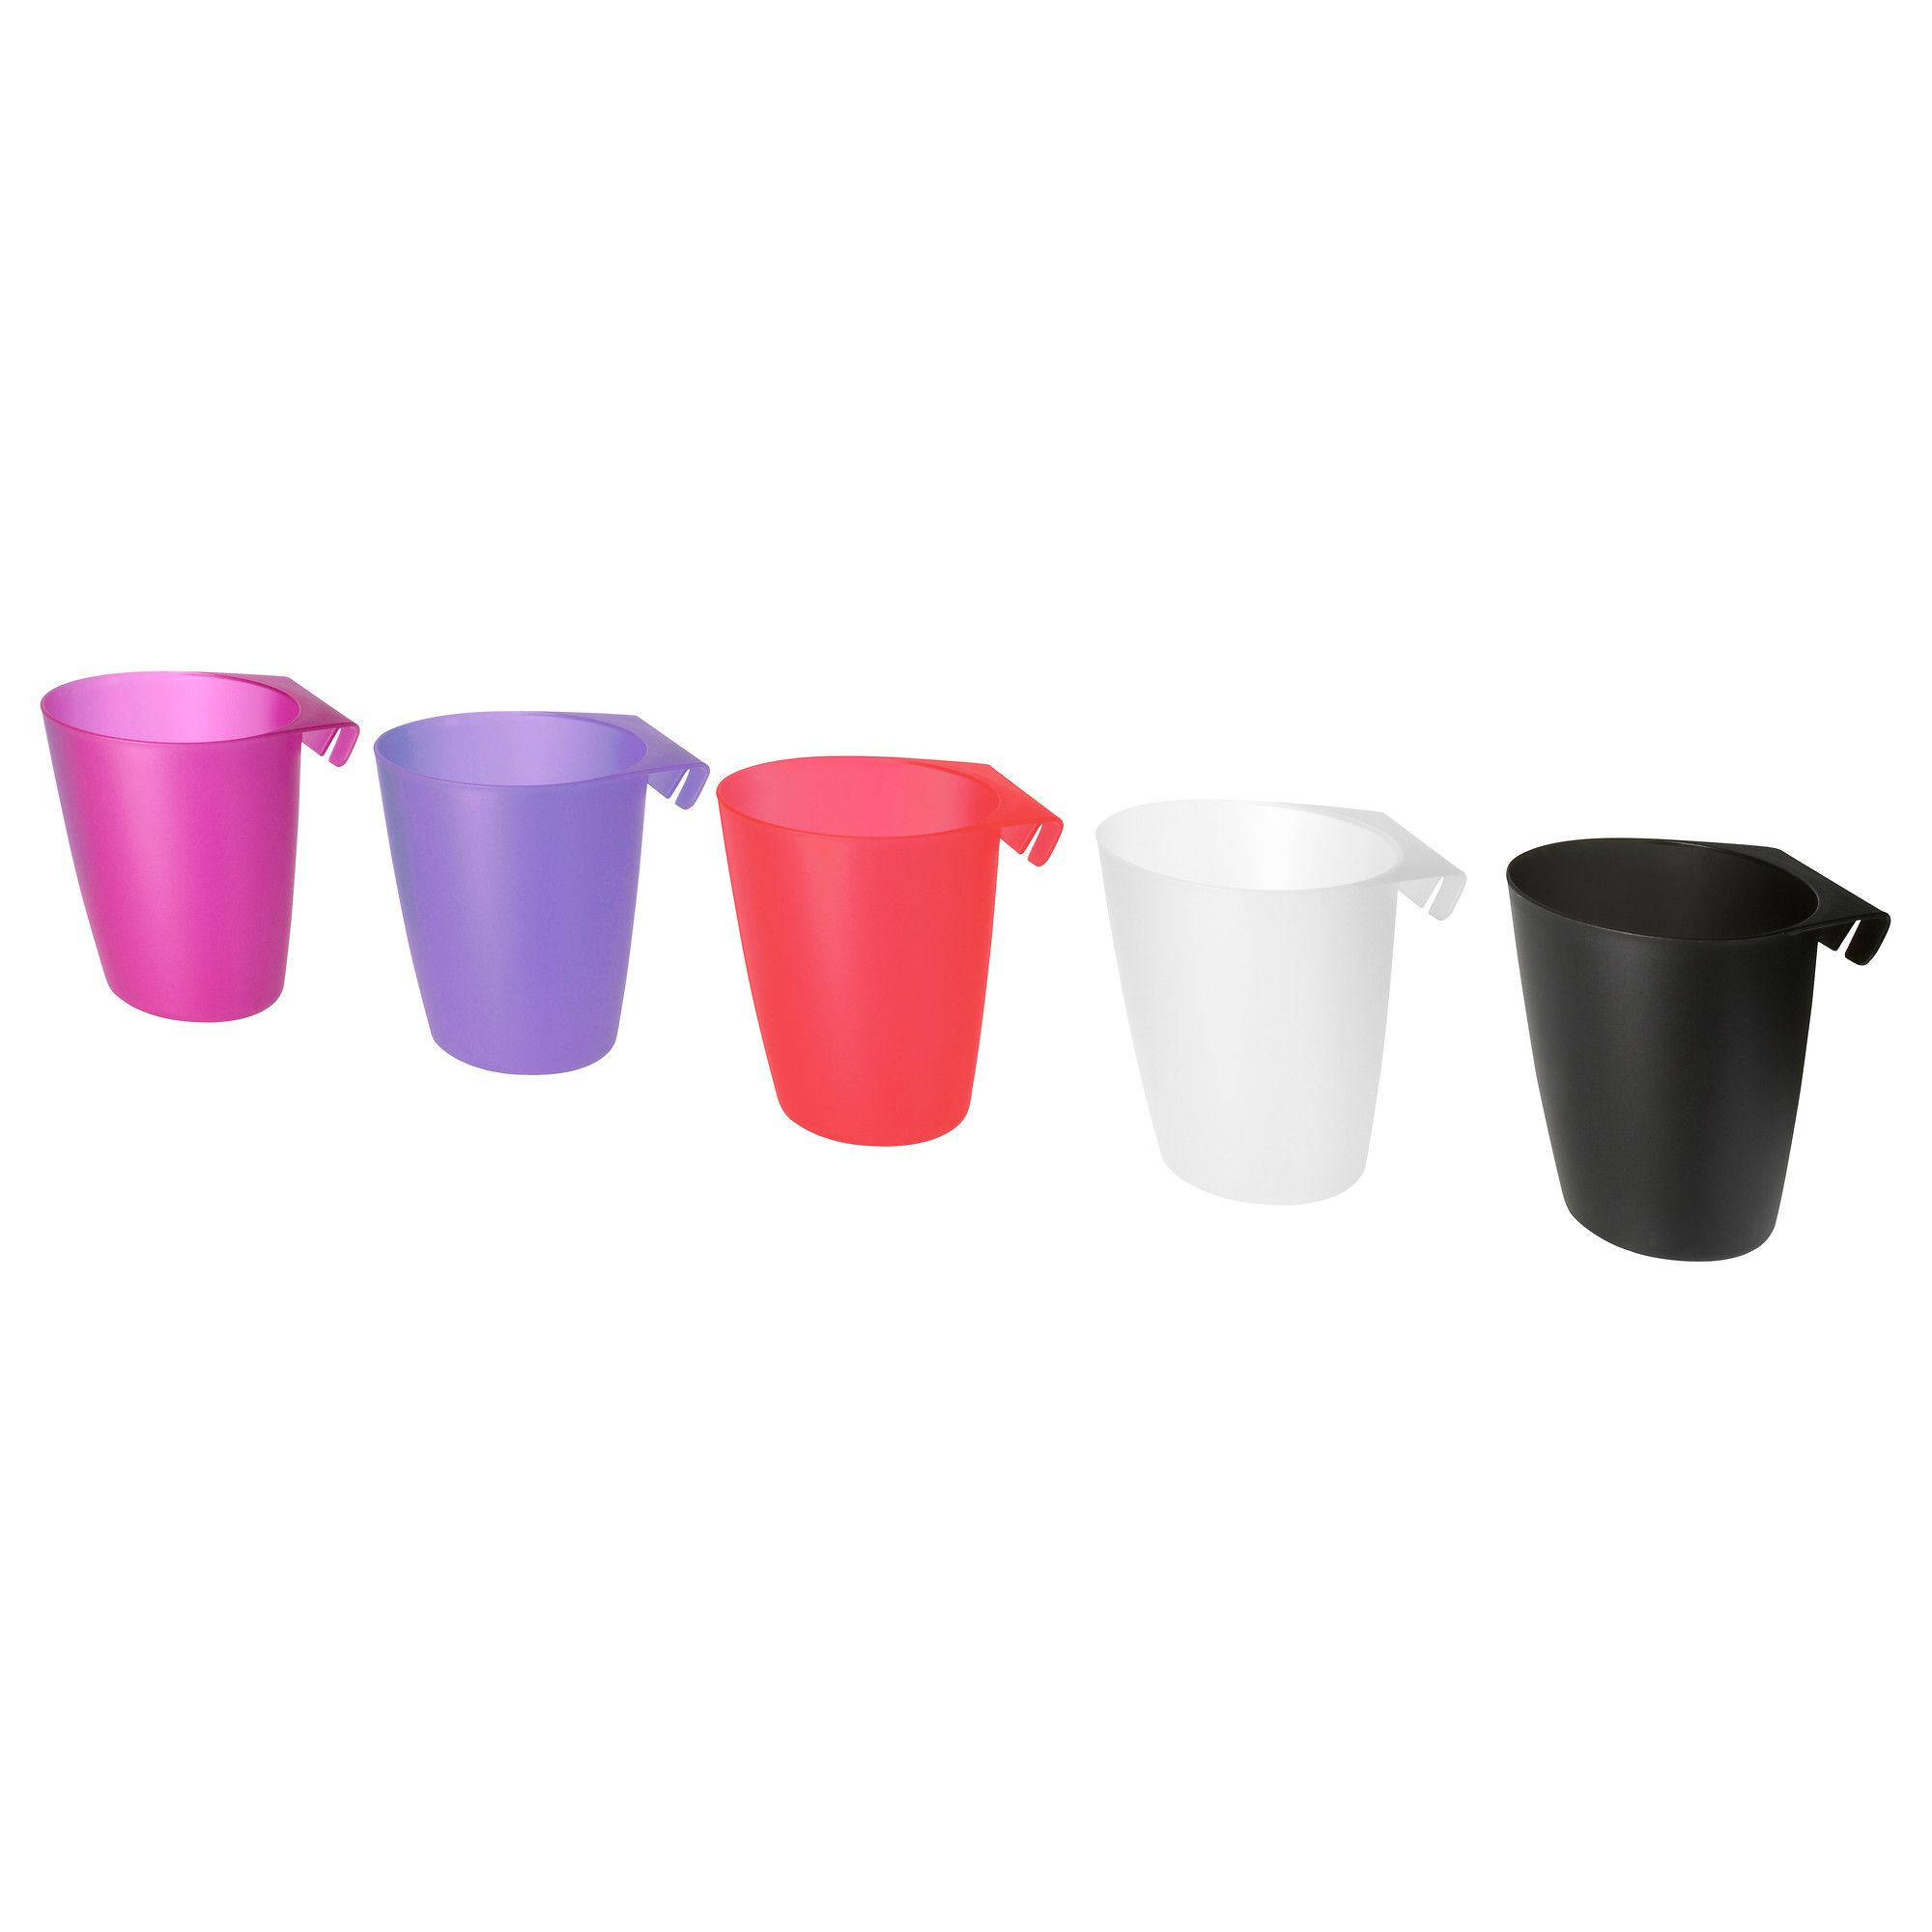 Bygel Behälter Bygel Container Assorted Colors 99 Article Number 202 197 38